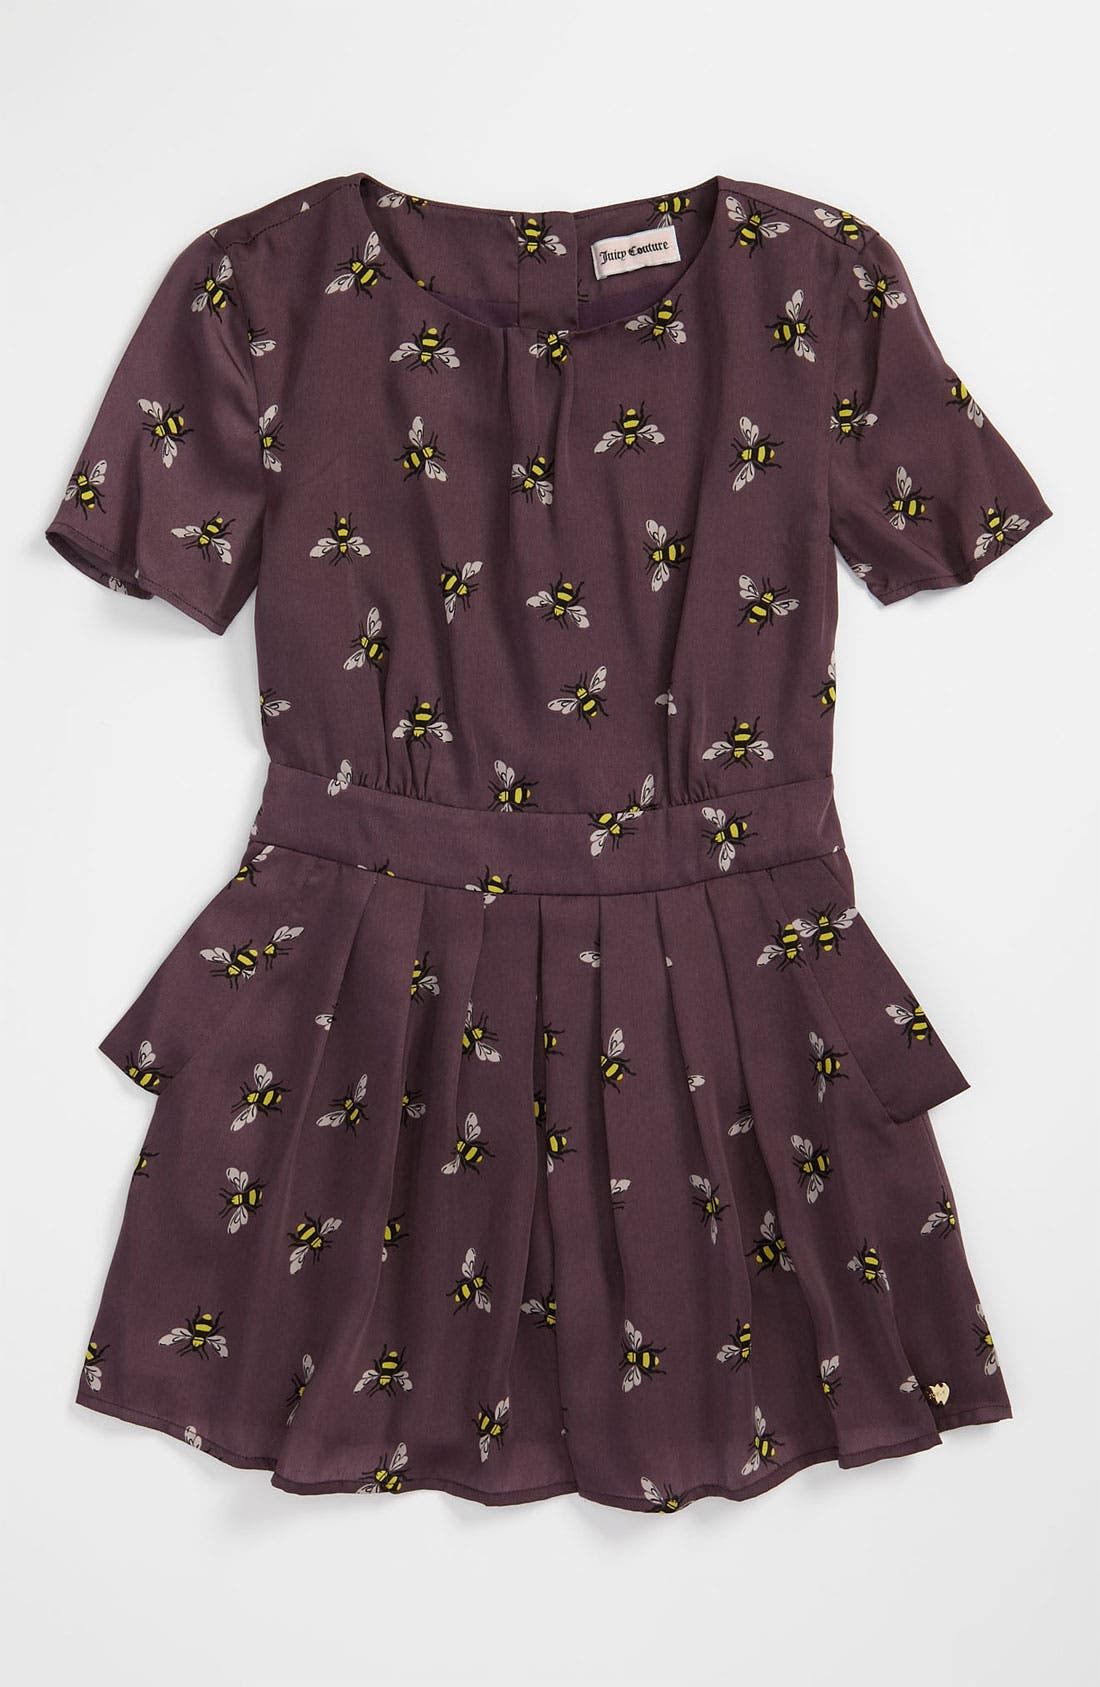 Main Image - Juicy Couture 'Bumble Bee' Charmeuse Dress (Little Girls & Big Girls)